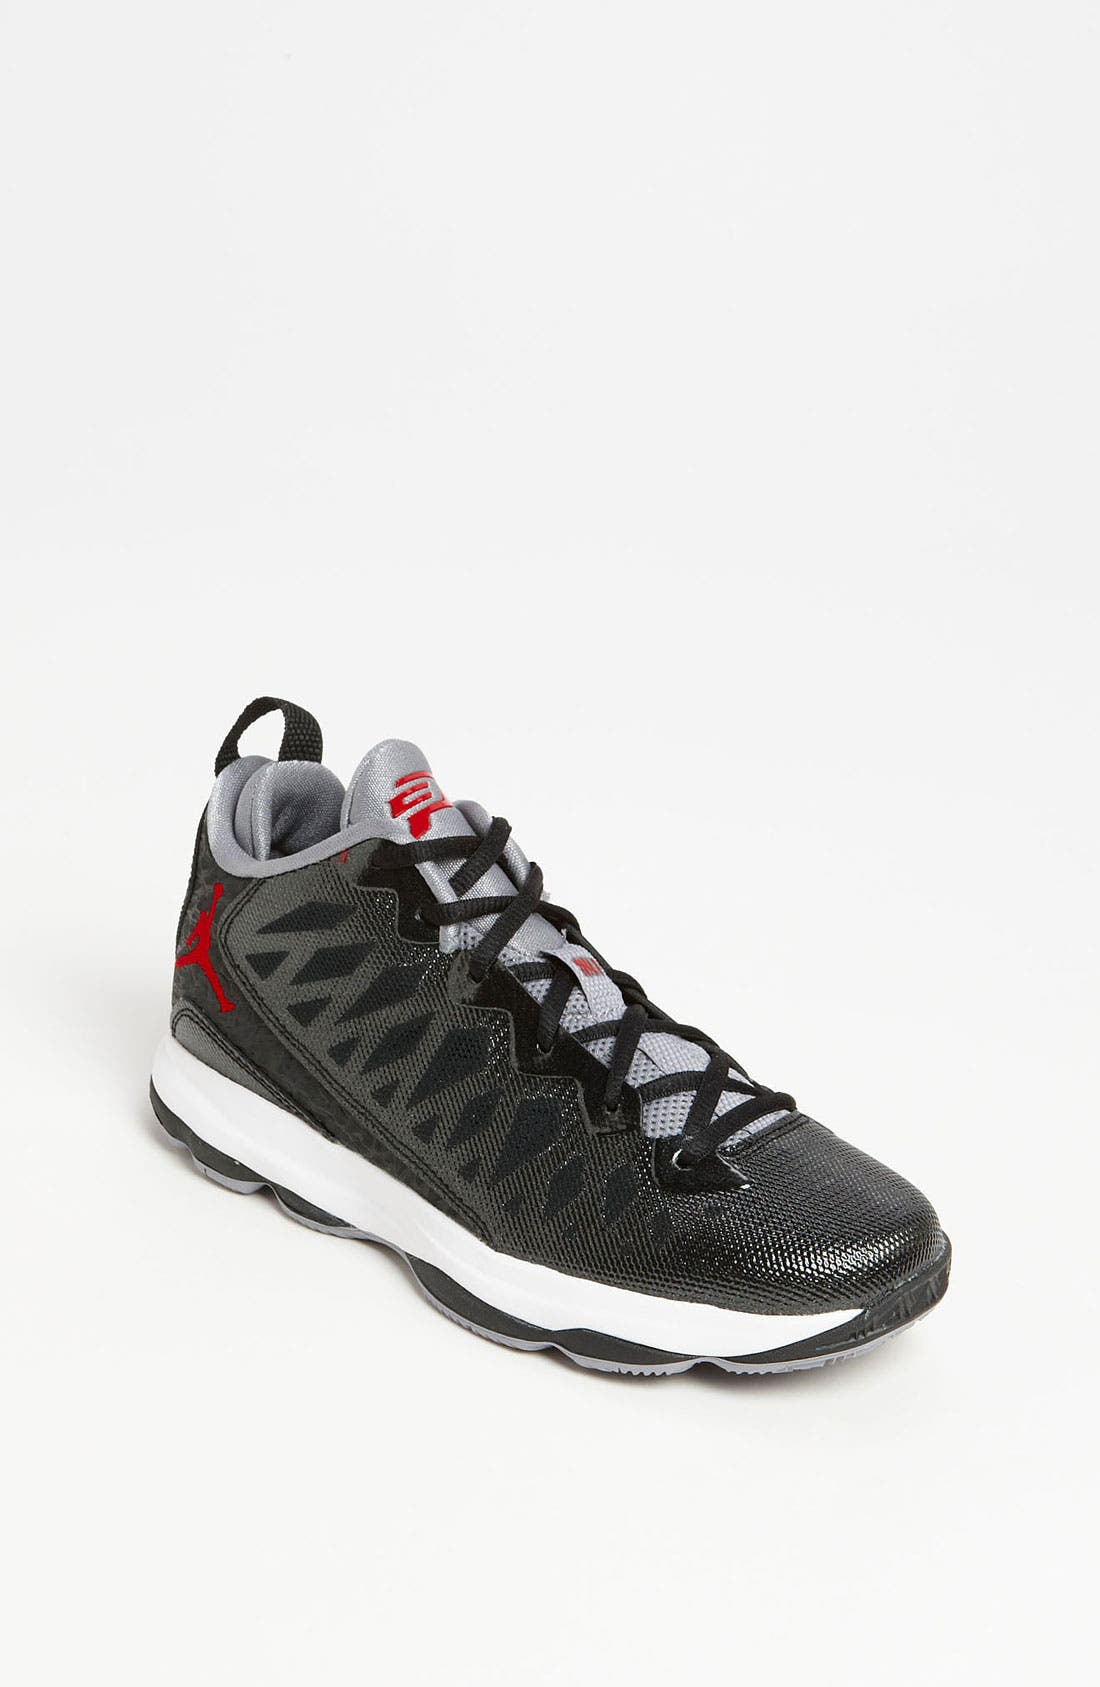 Alternate Image 1 Selected - Nike 'Jordan CP3.VI' Basketball Shoe (Big Kid)